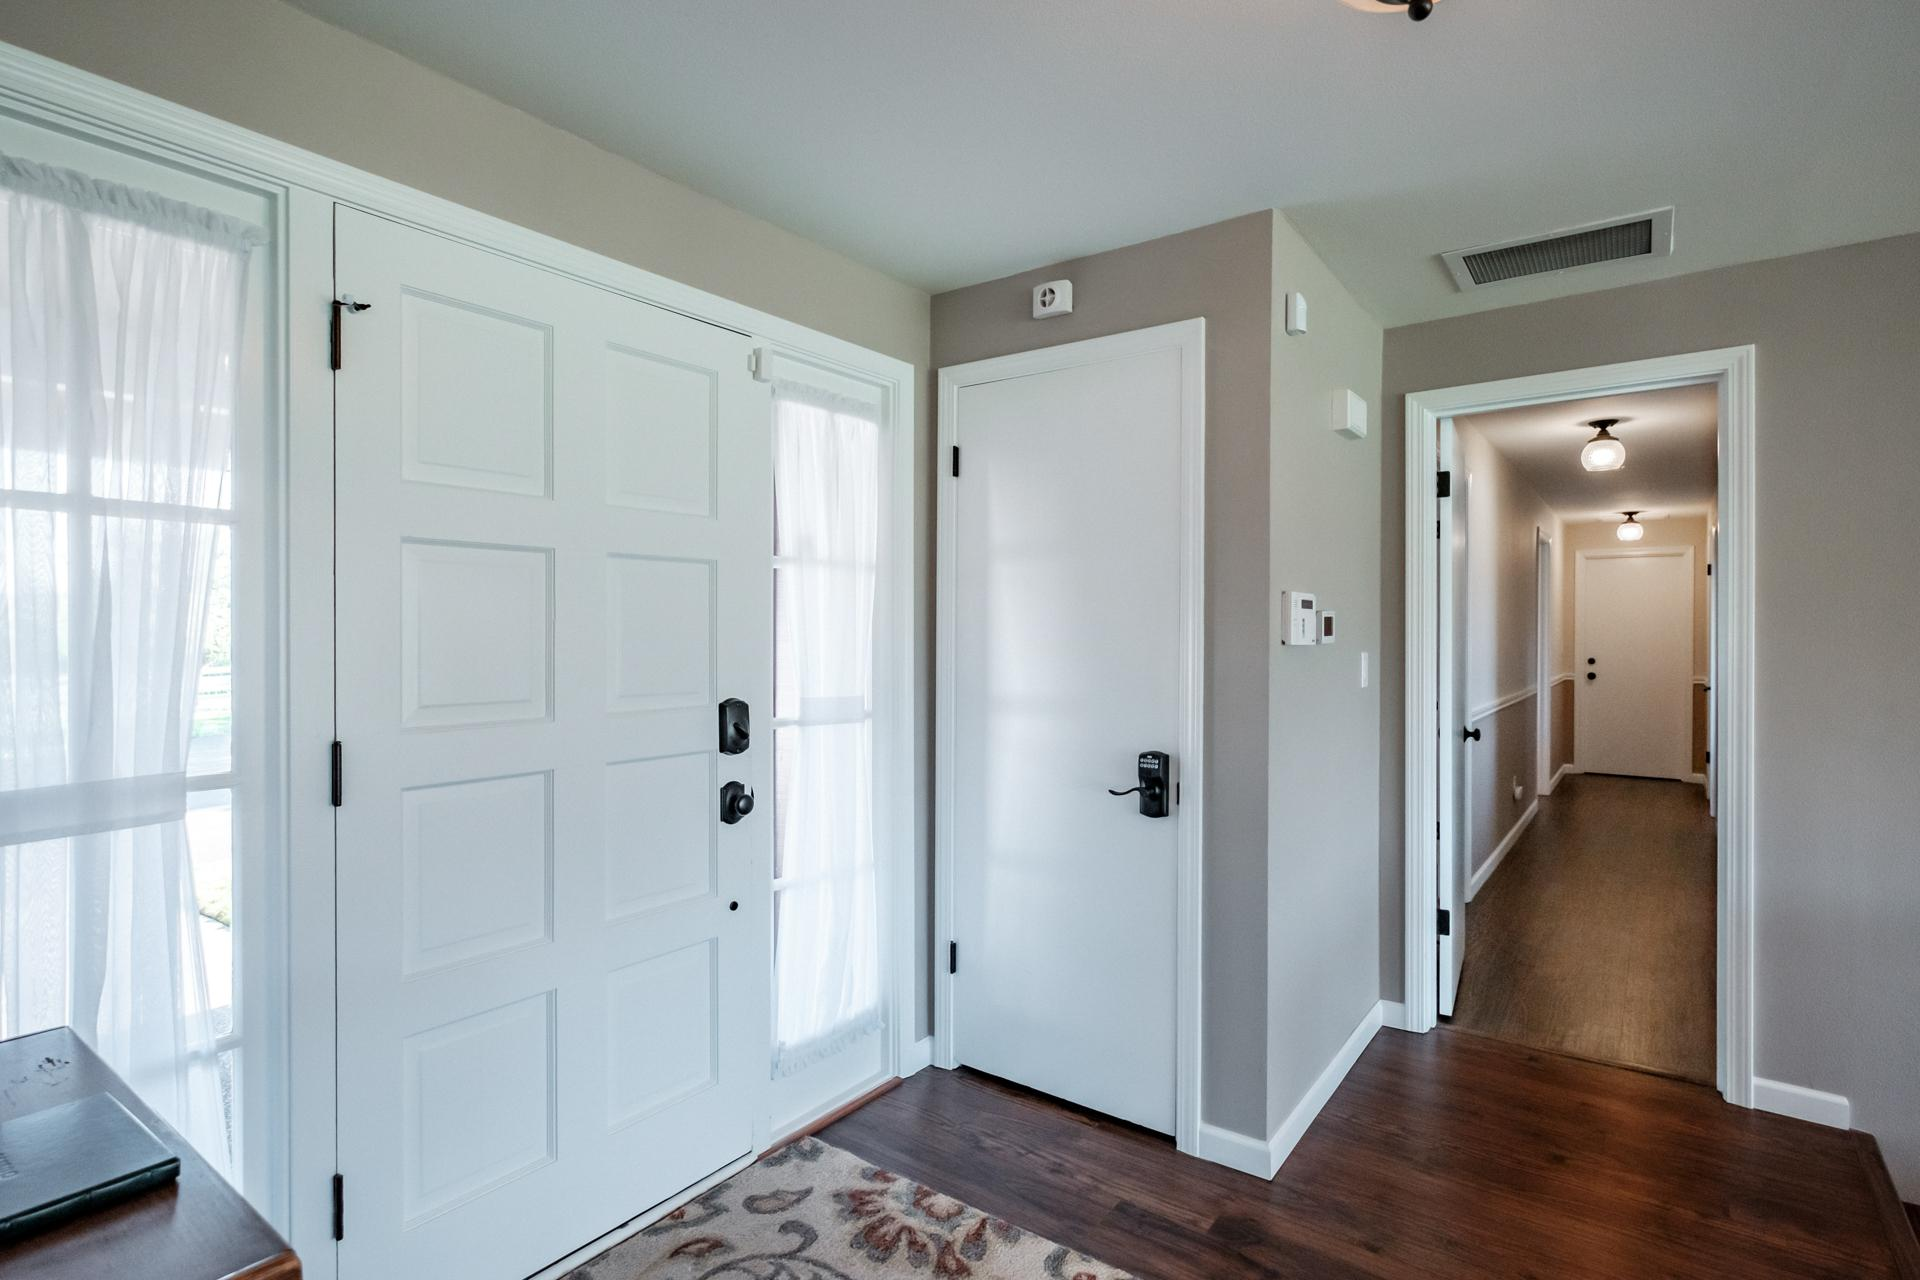 Entrance landing and hallway to bedrooms.